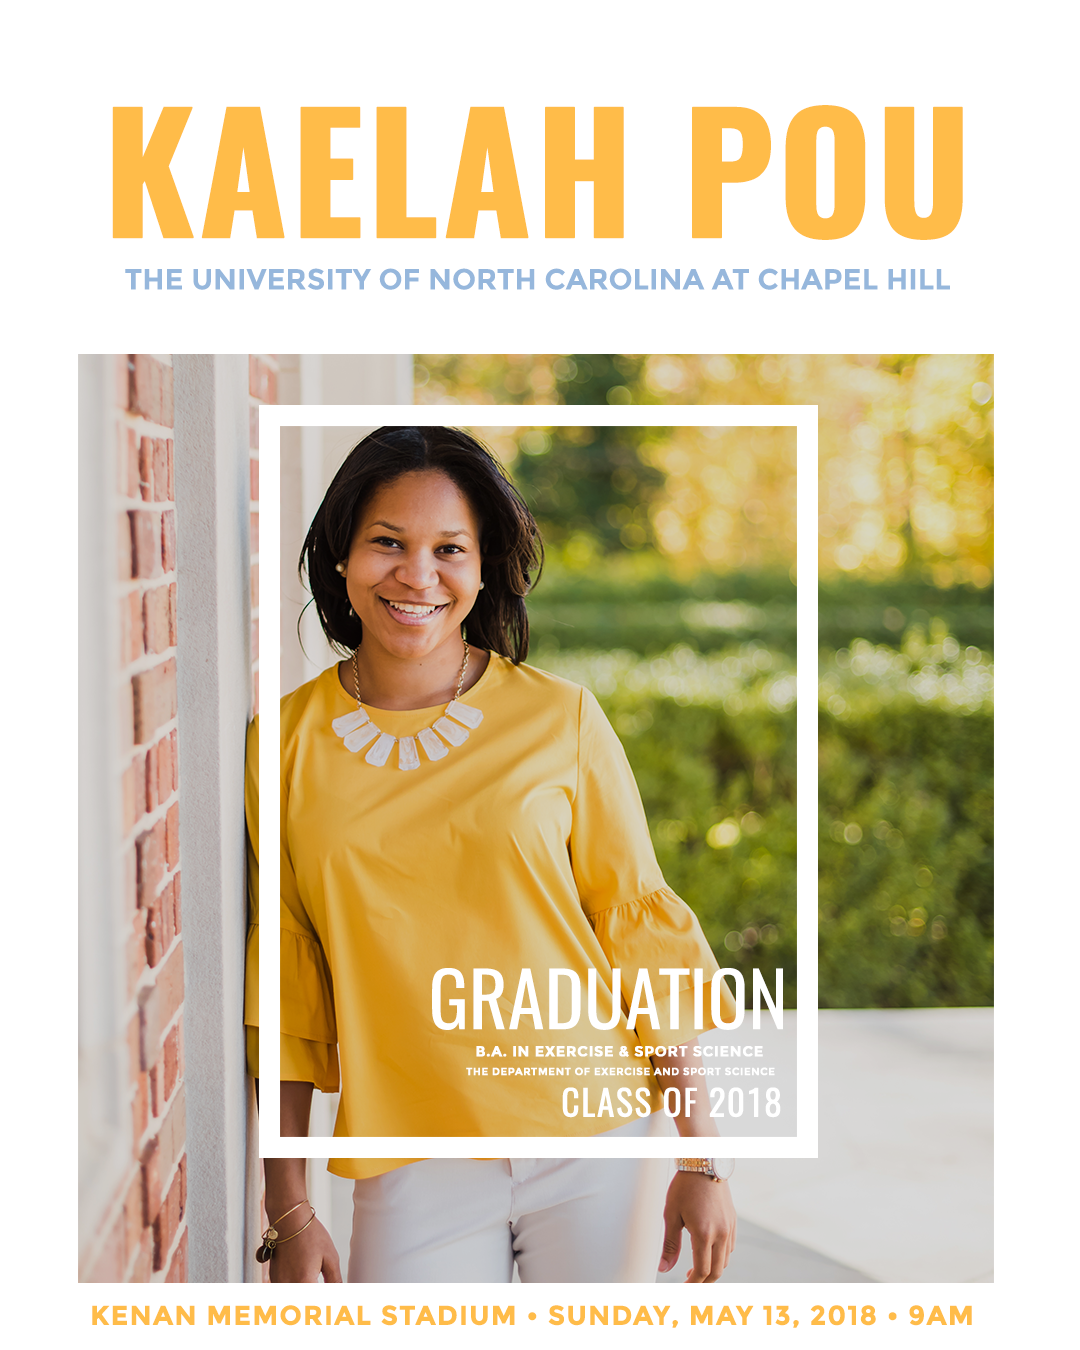 sample custom graduation announcement design